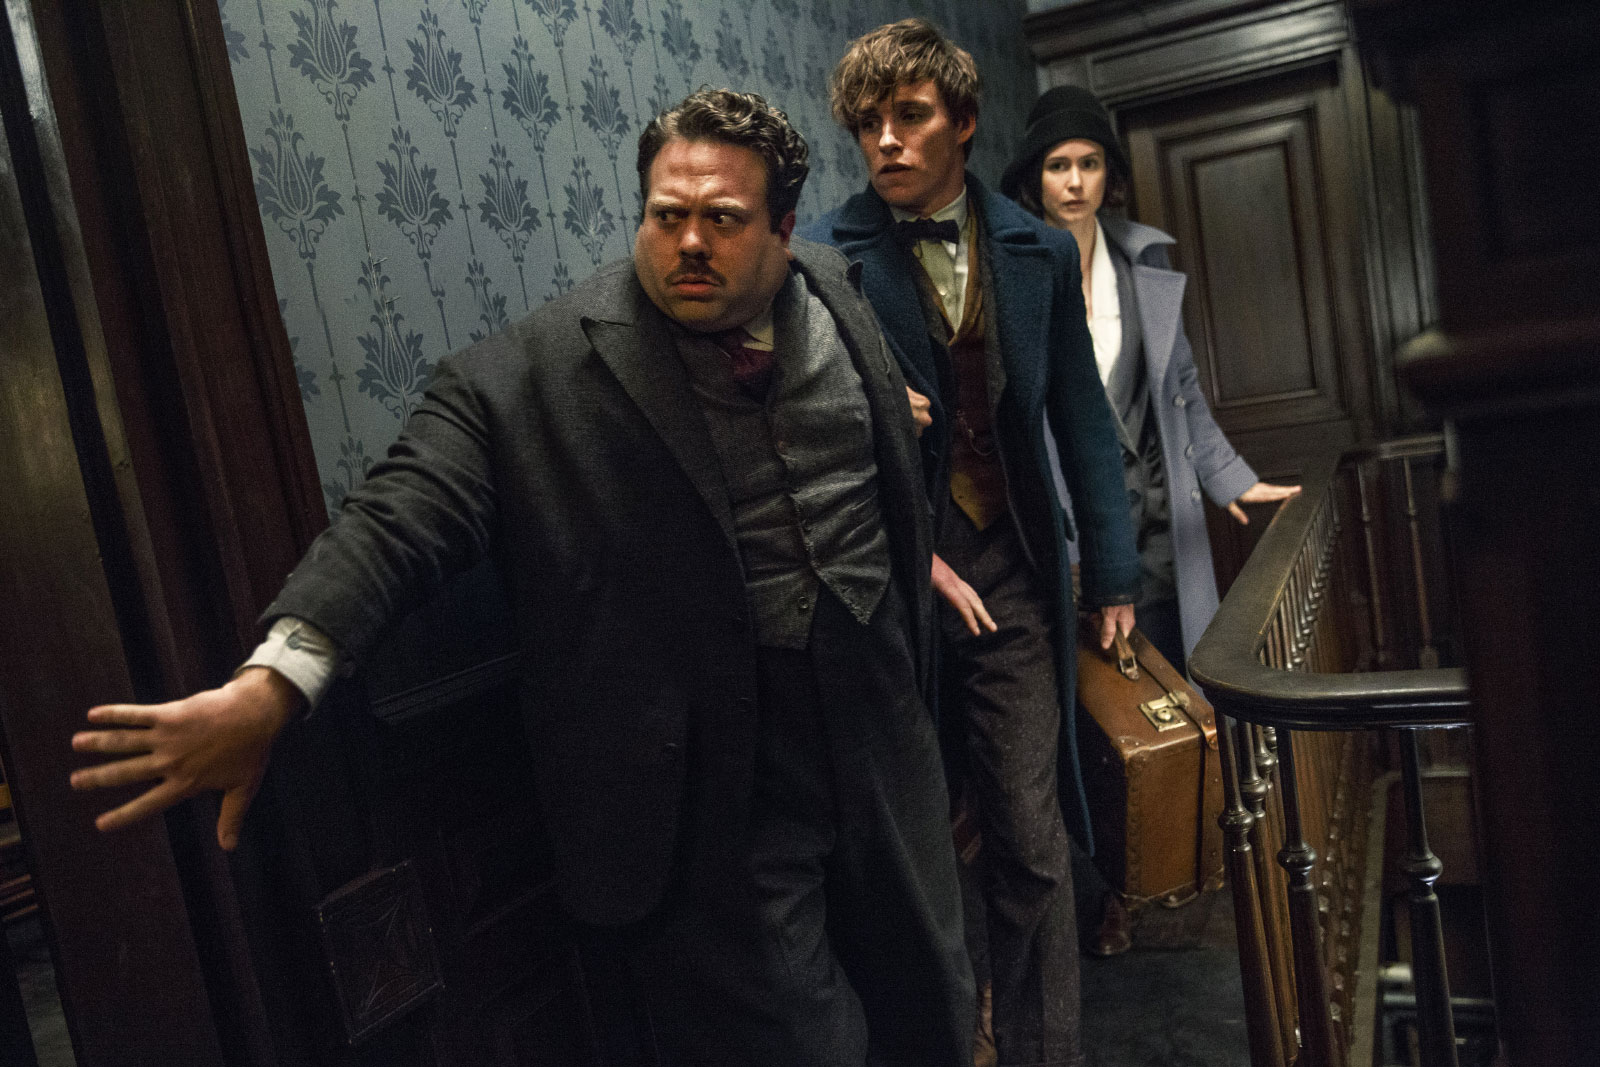 'Fantastic Beasts and where to Find Them' movie review, by Pamela Price